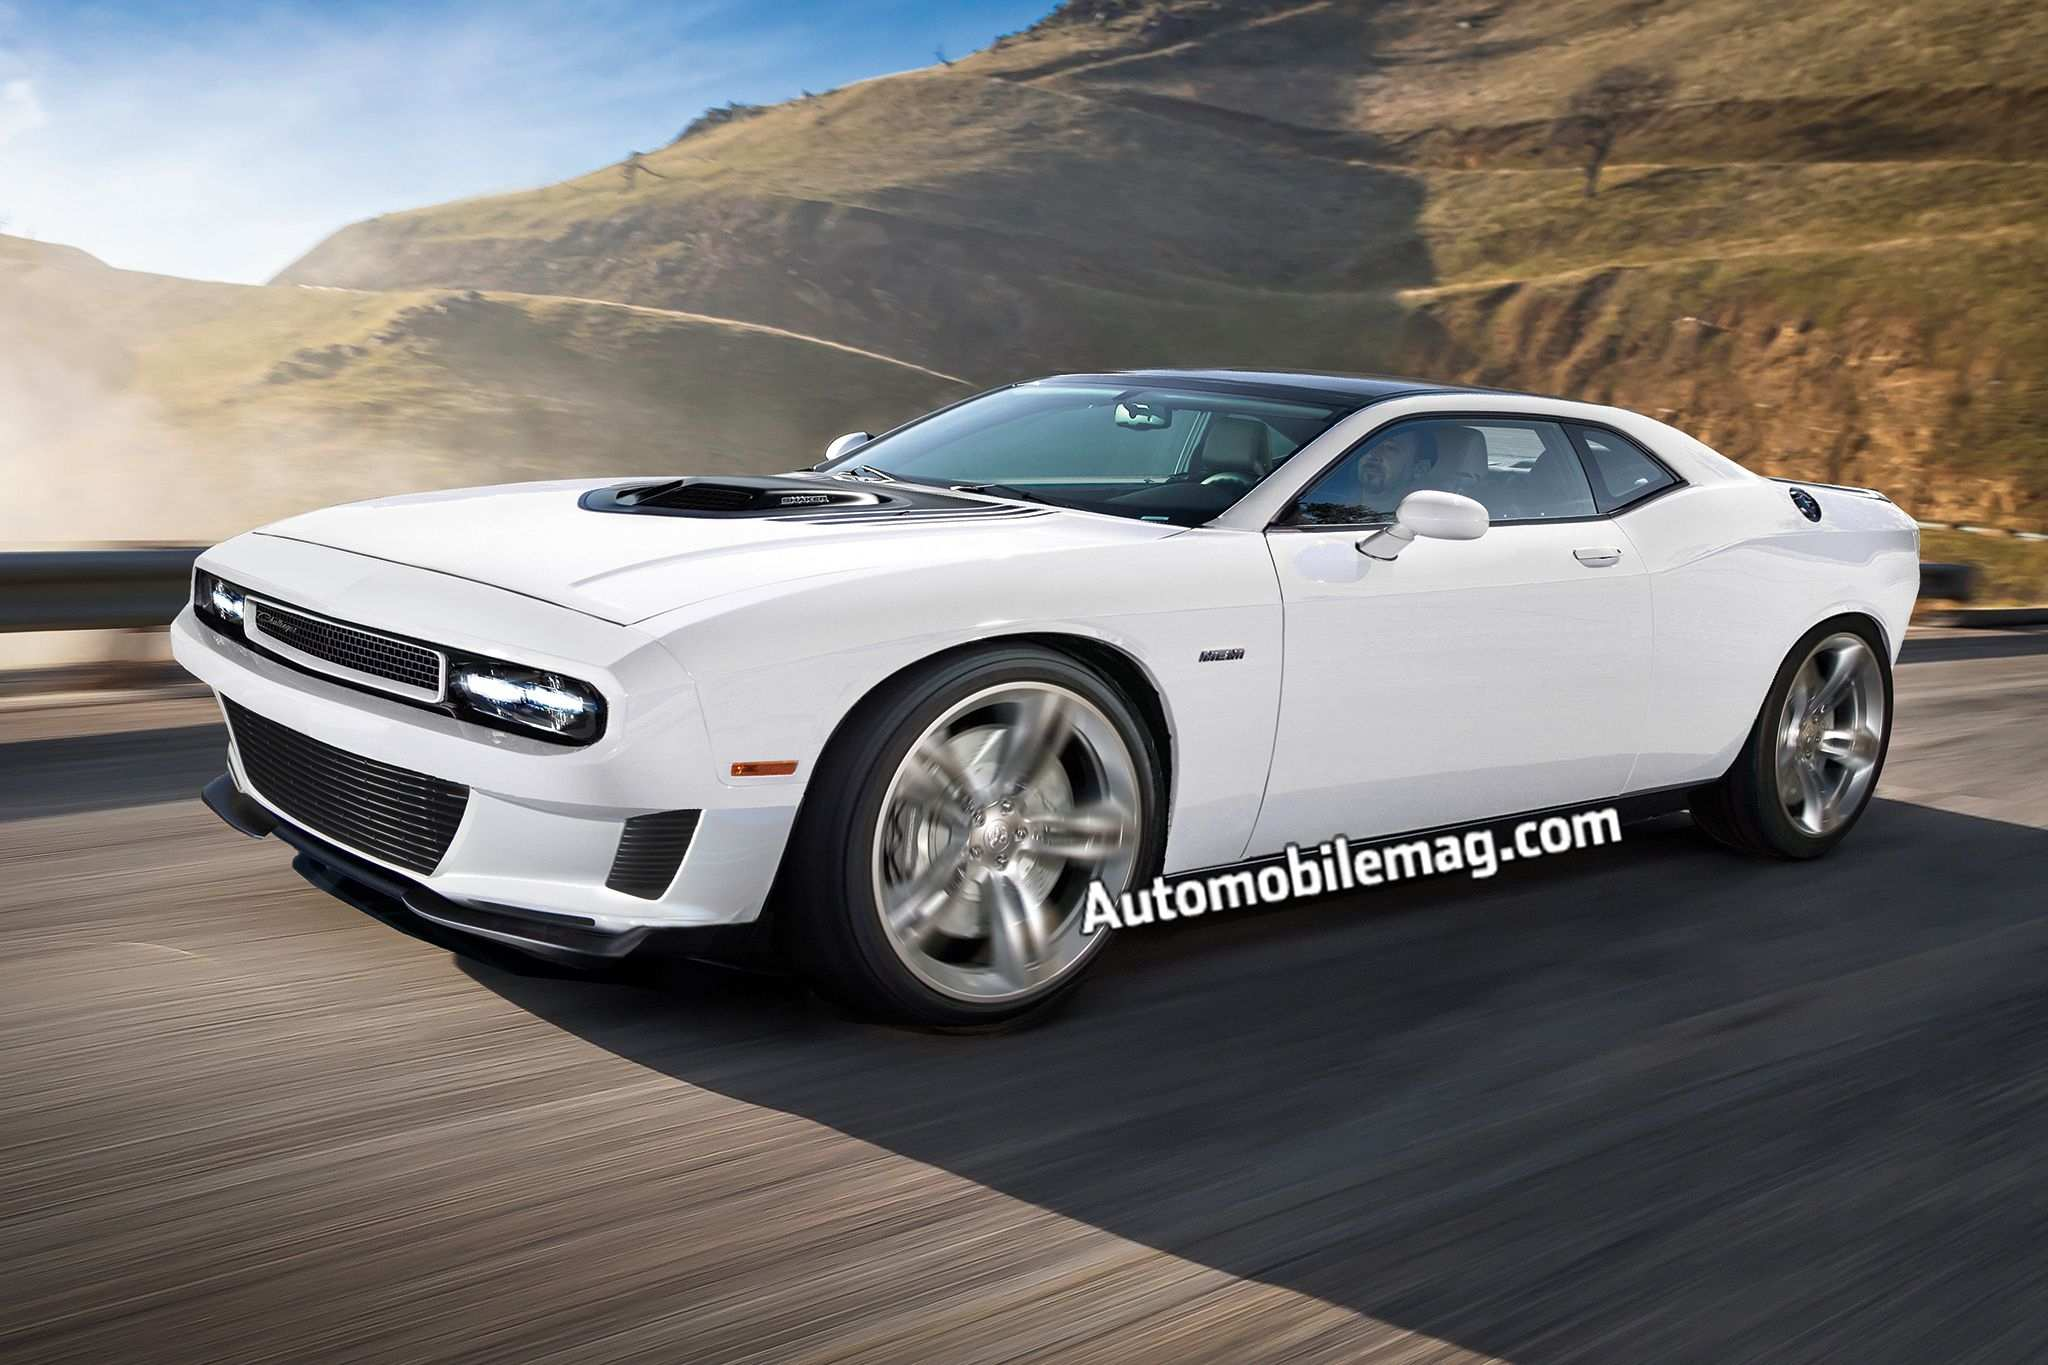 49 Gallery of Dodge Challenger New Model 2020 Price for Dodge Challenger New Model 2020